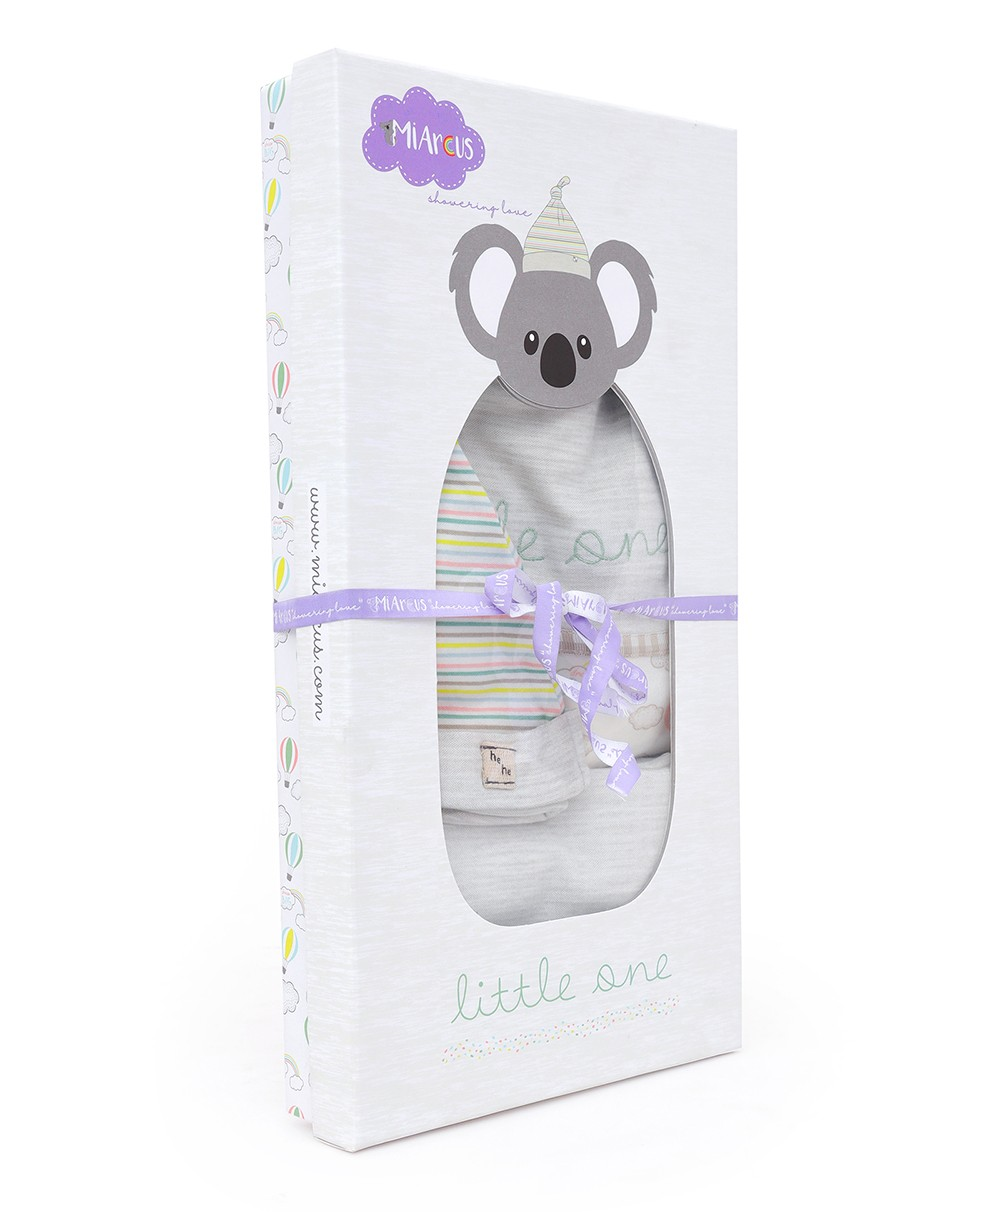 Beeby Knitted Gift Set - Arcus